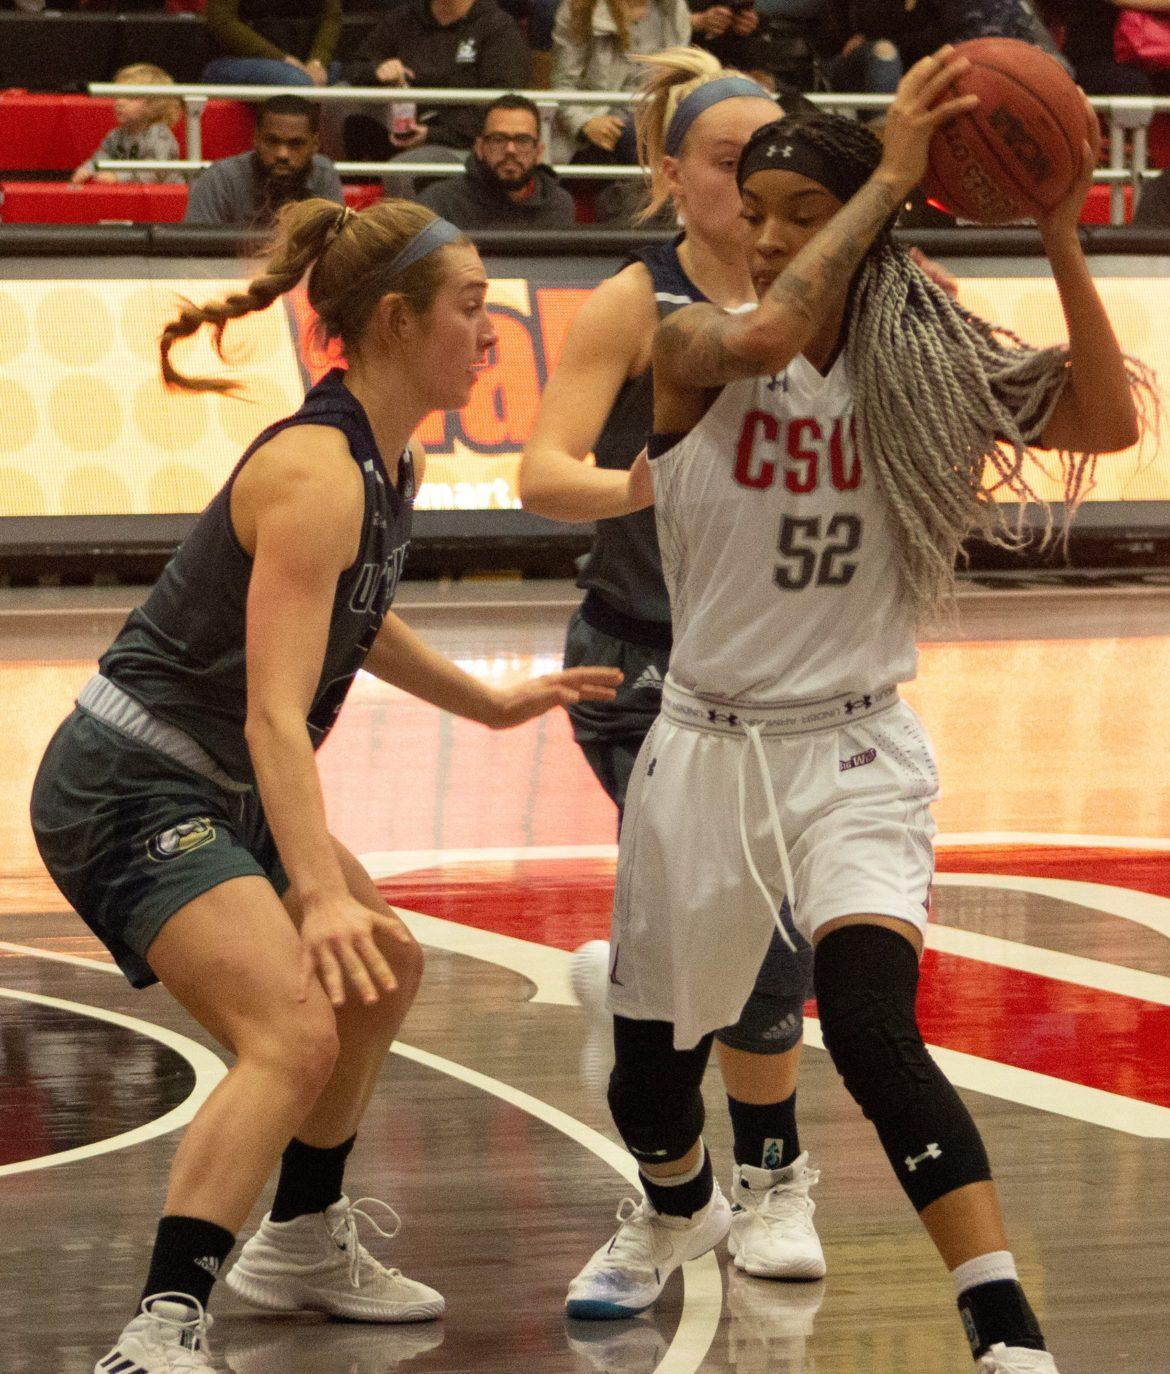 Junior+forward+Eliza+Matthews+attempts+to+escape+a+double-team+in+the+Matadors+loss+to+Davis+on+Thursday.+Matthews+had+five+points+and+four+rebounds+in+what+could+have+been+a+preview+of+the+Big+West+title+game+in+March.+Photo+credit%3A+Elliott+Keegan